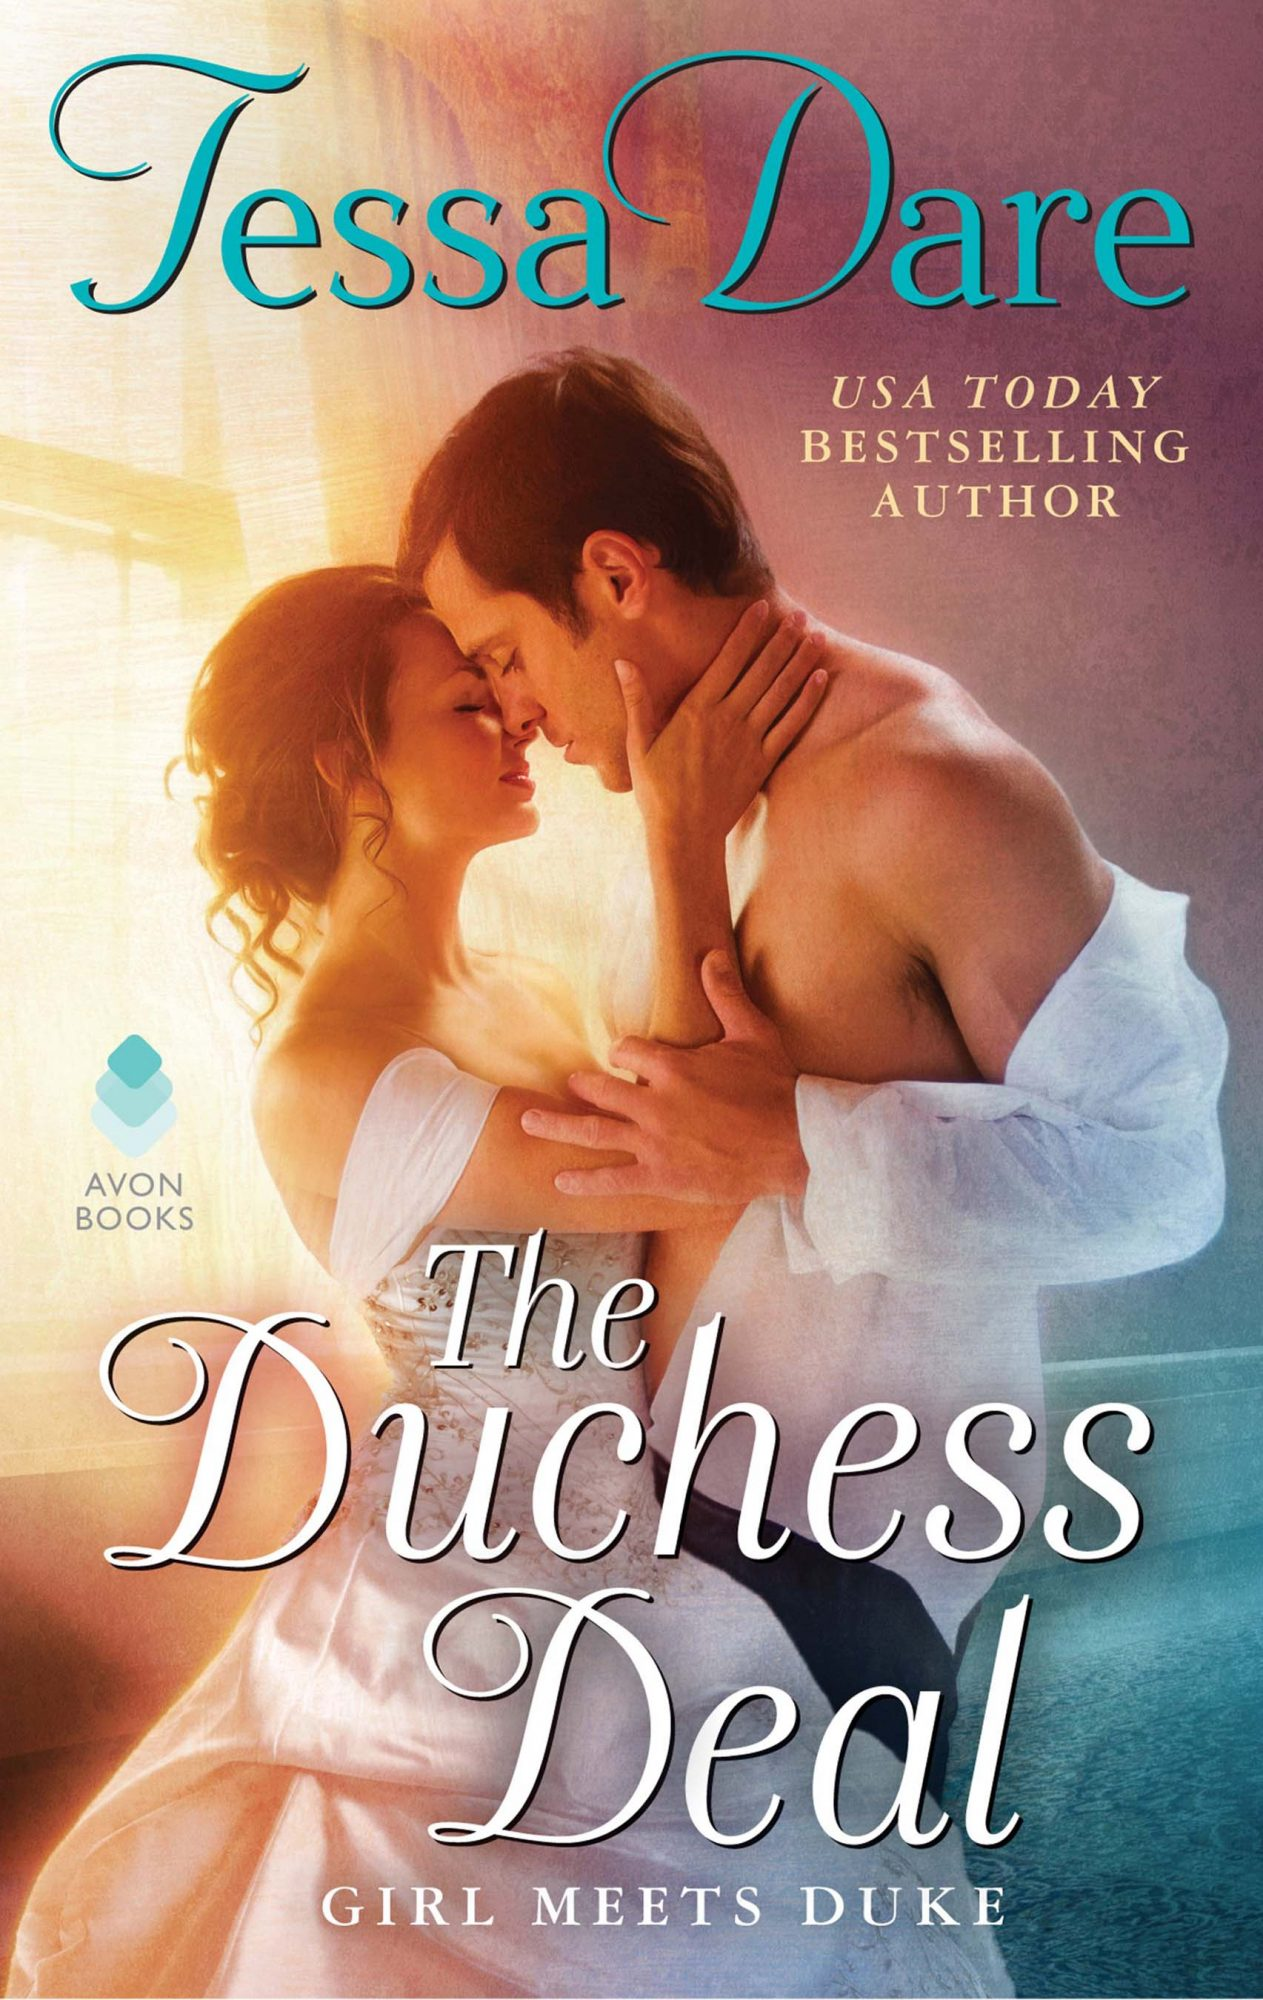 The Duchess Deal, by Tessa Dare